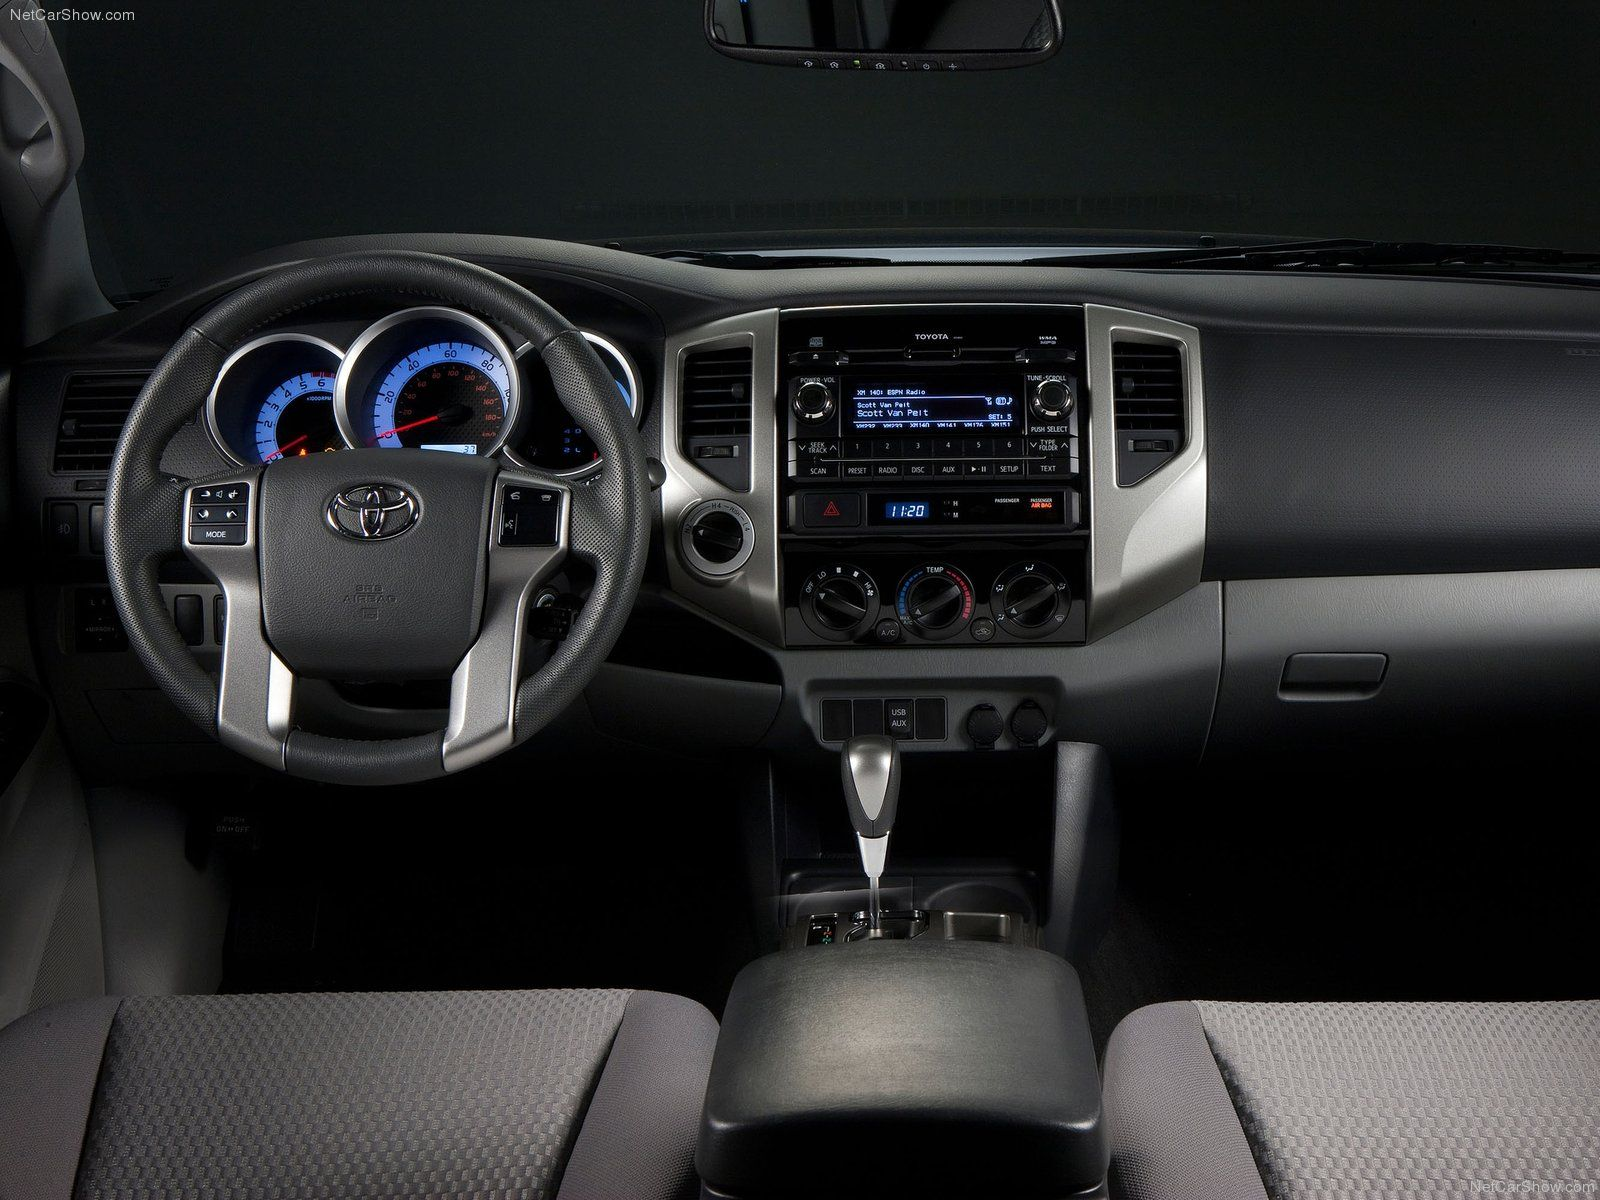 2014 Toyota Tacoma Interior Dashboard Photos